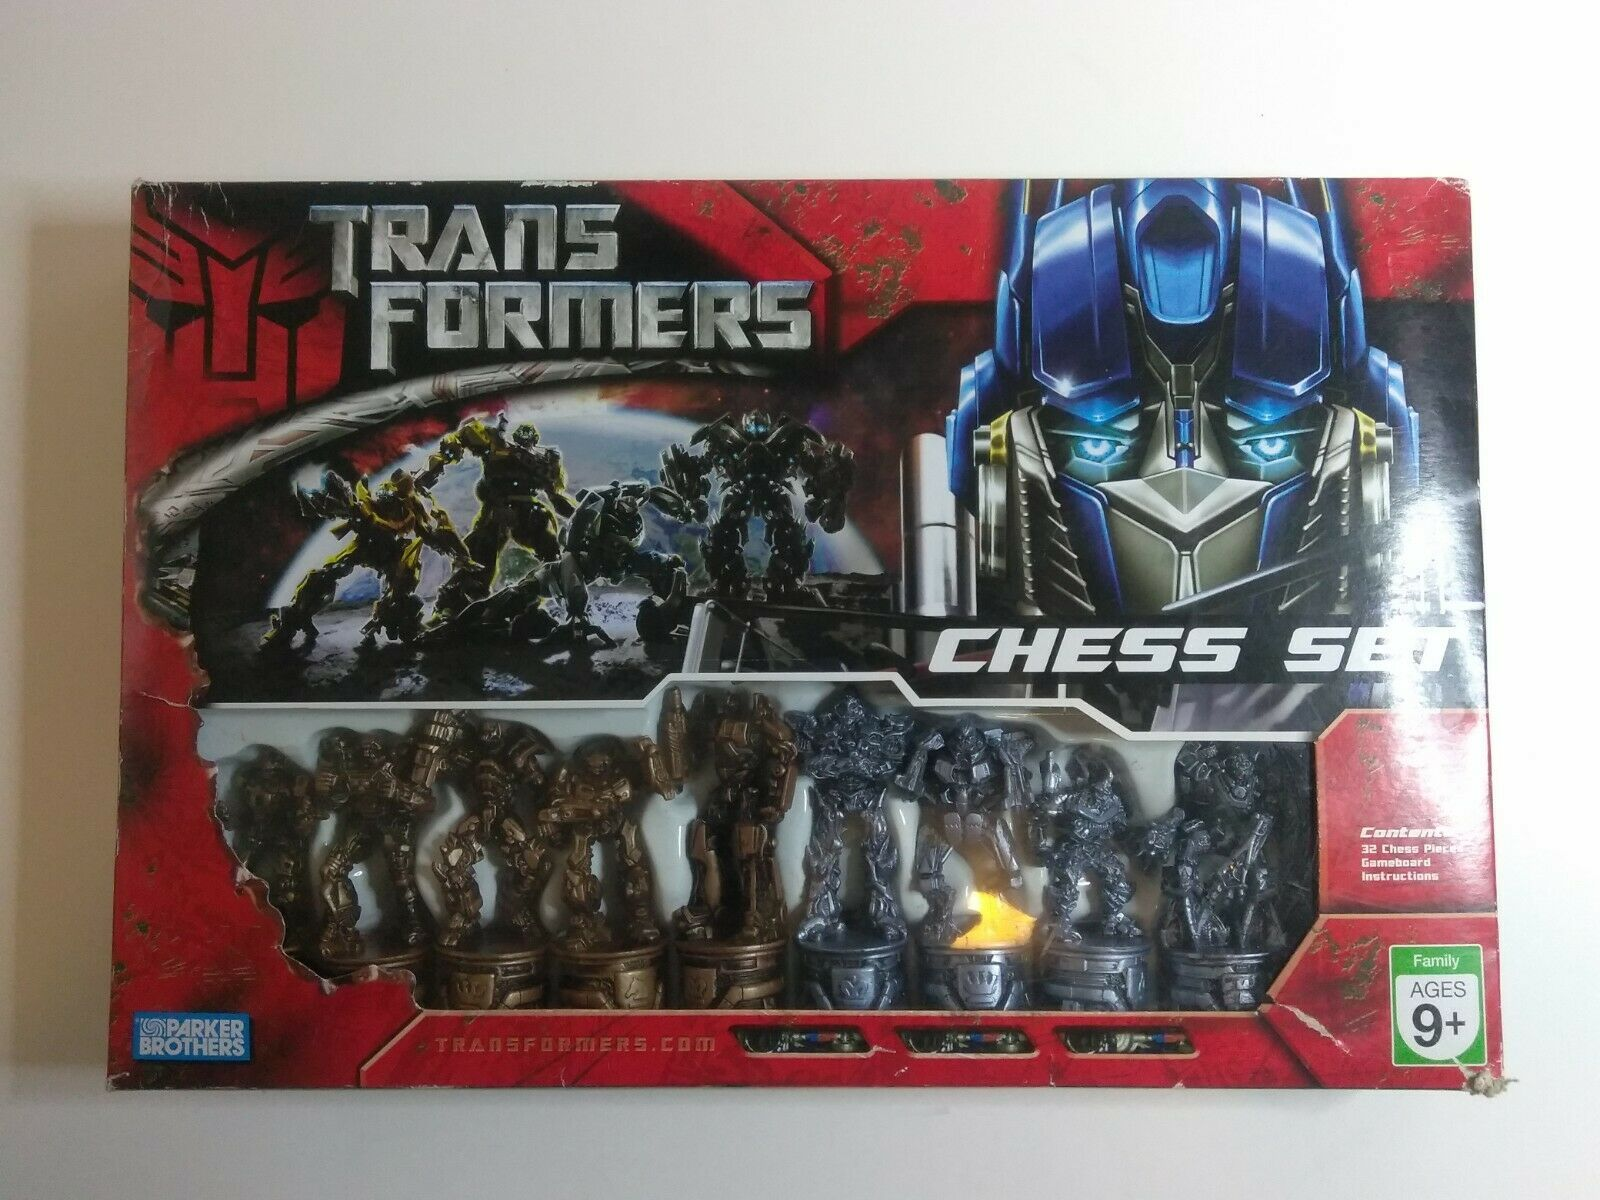 Transformers Chess Set 2007 Parker Brothers Complete Set. - $28.25